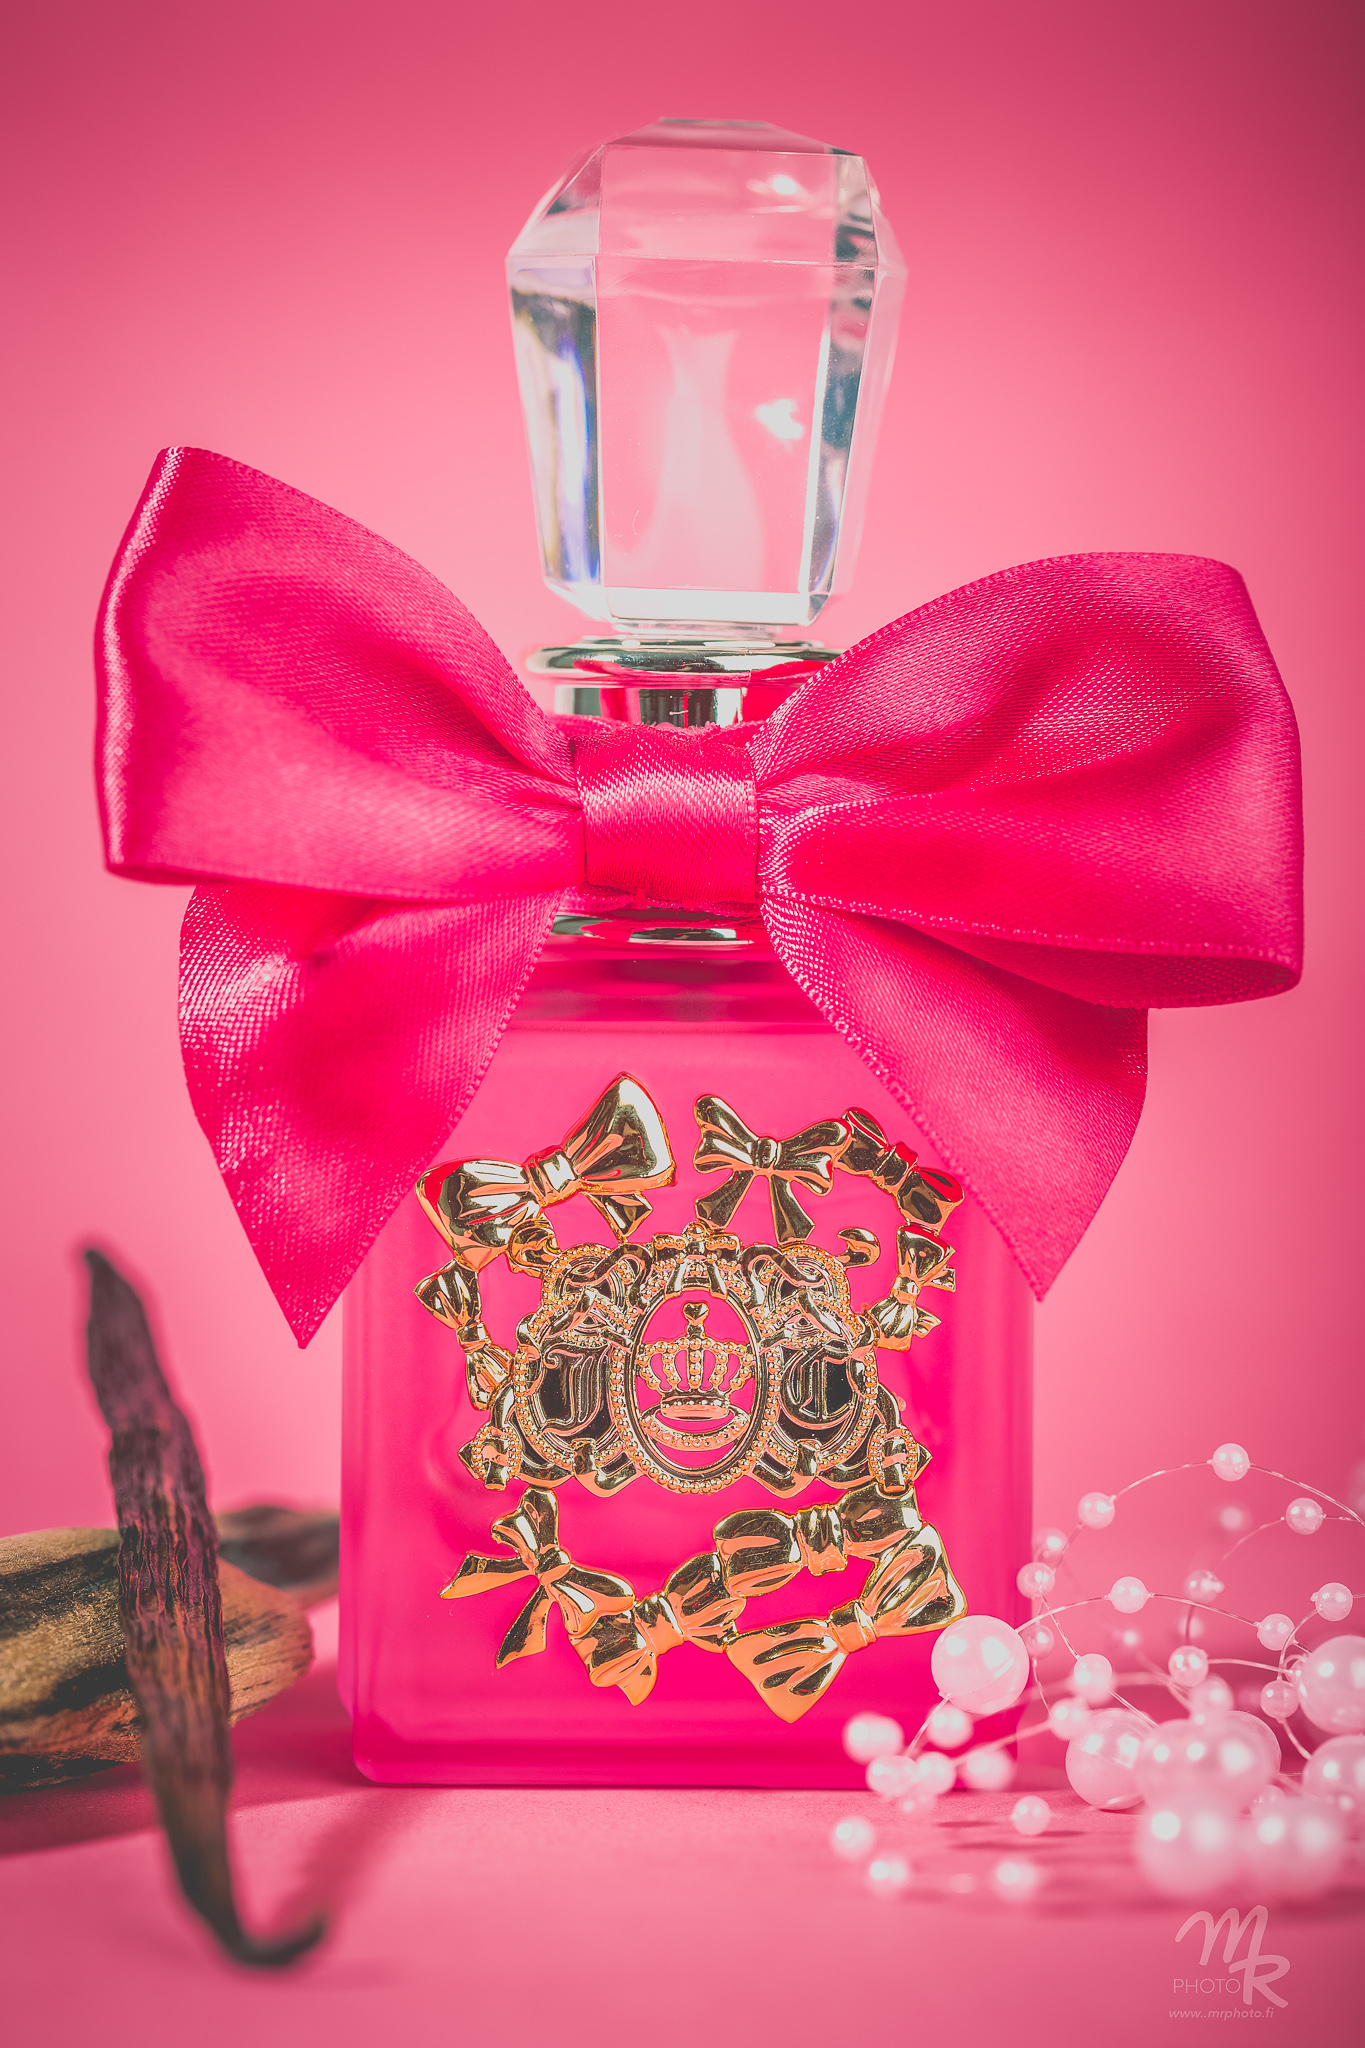 Juice Couture Viva la juicy